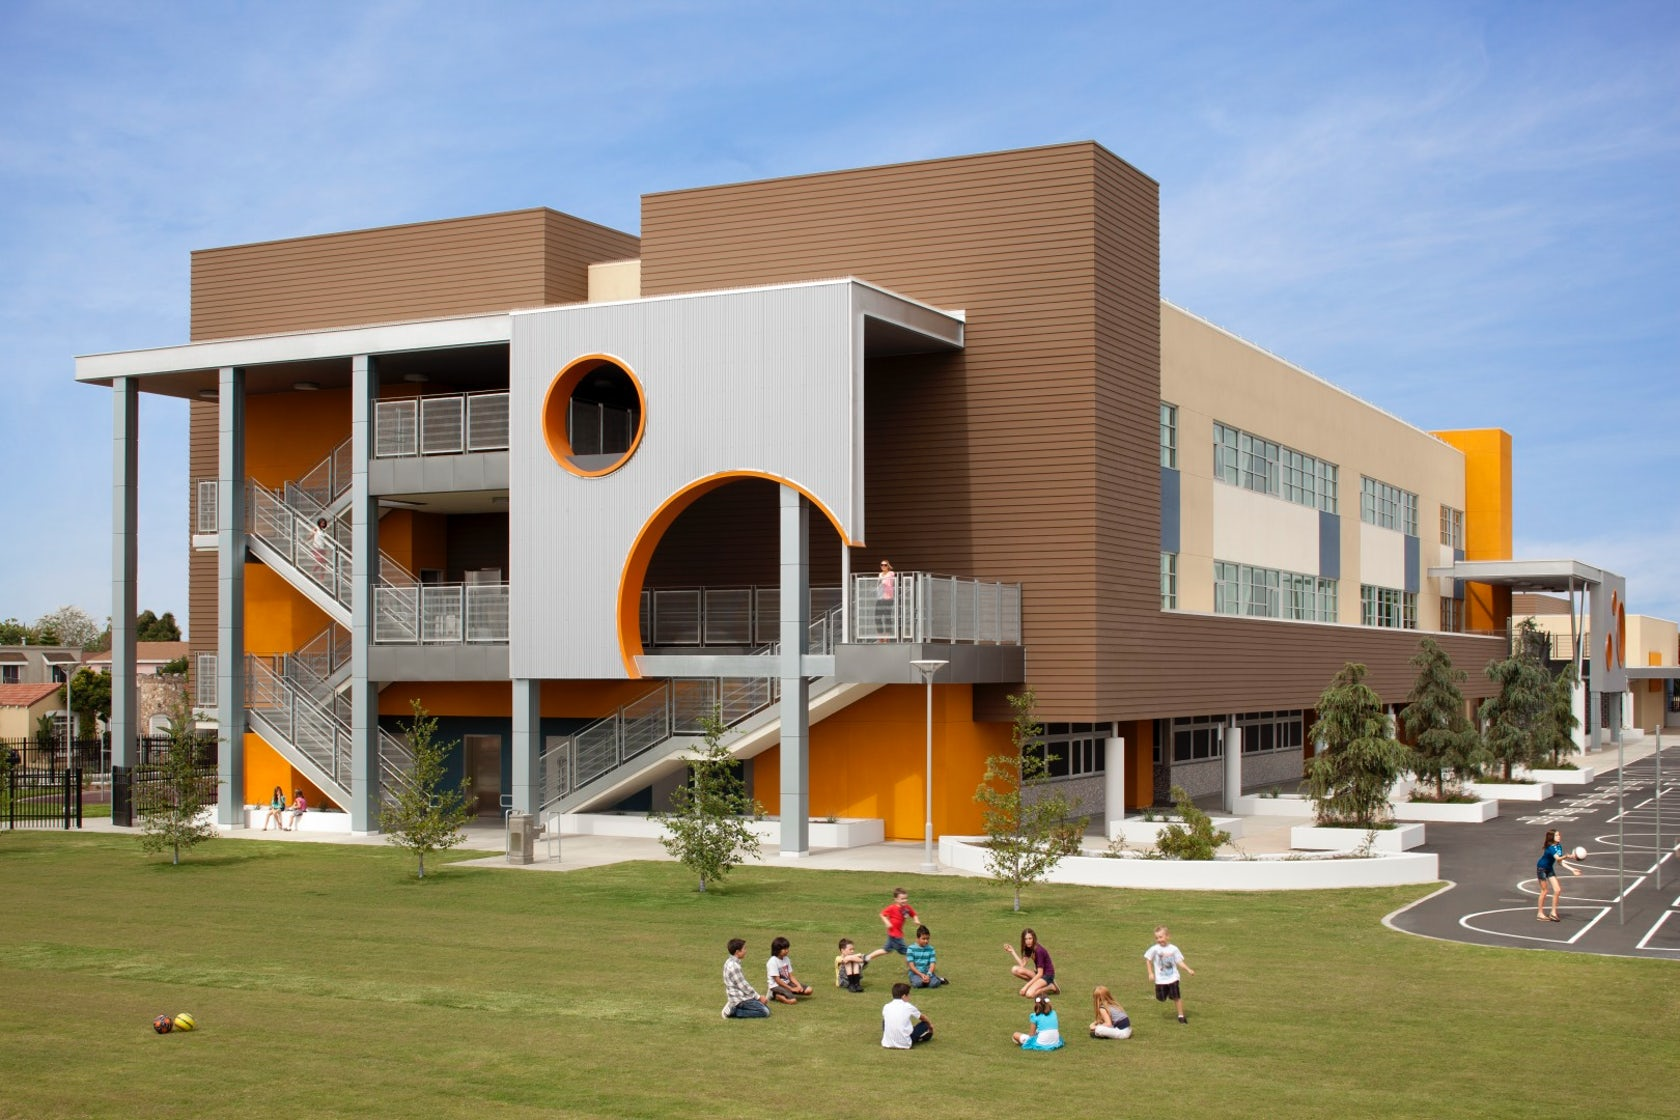 South Region Elementary School #9 - Architizer